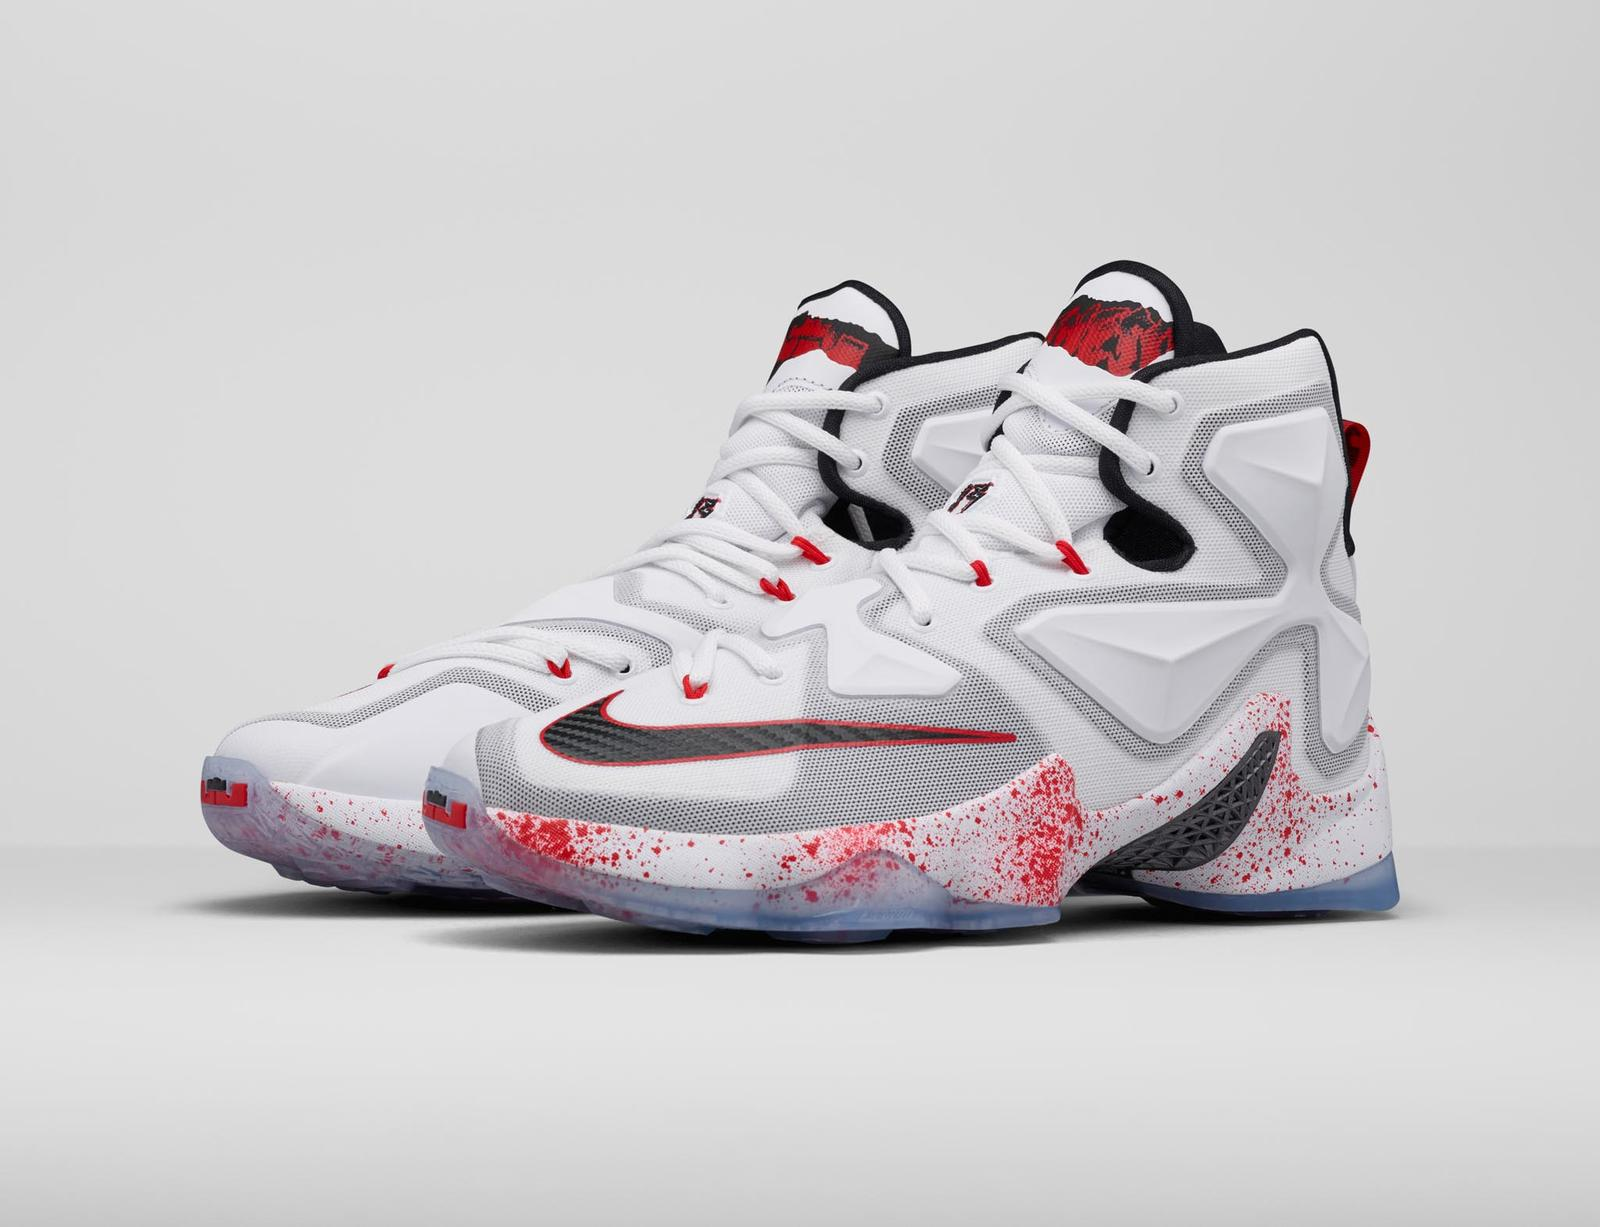 Introducing the Lebron 13 Horror Flick Shoe